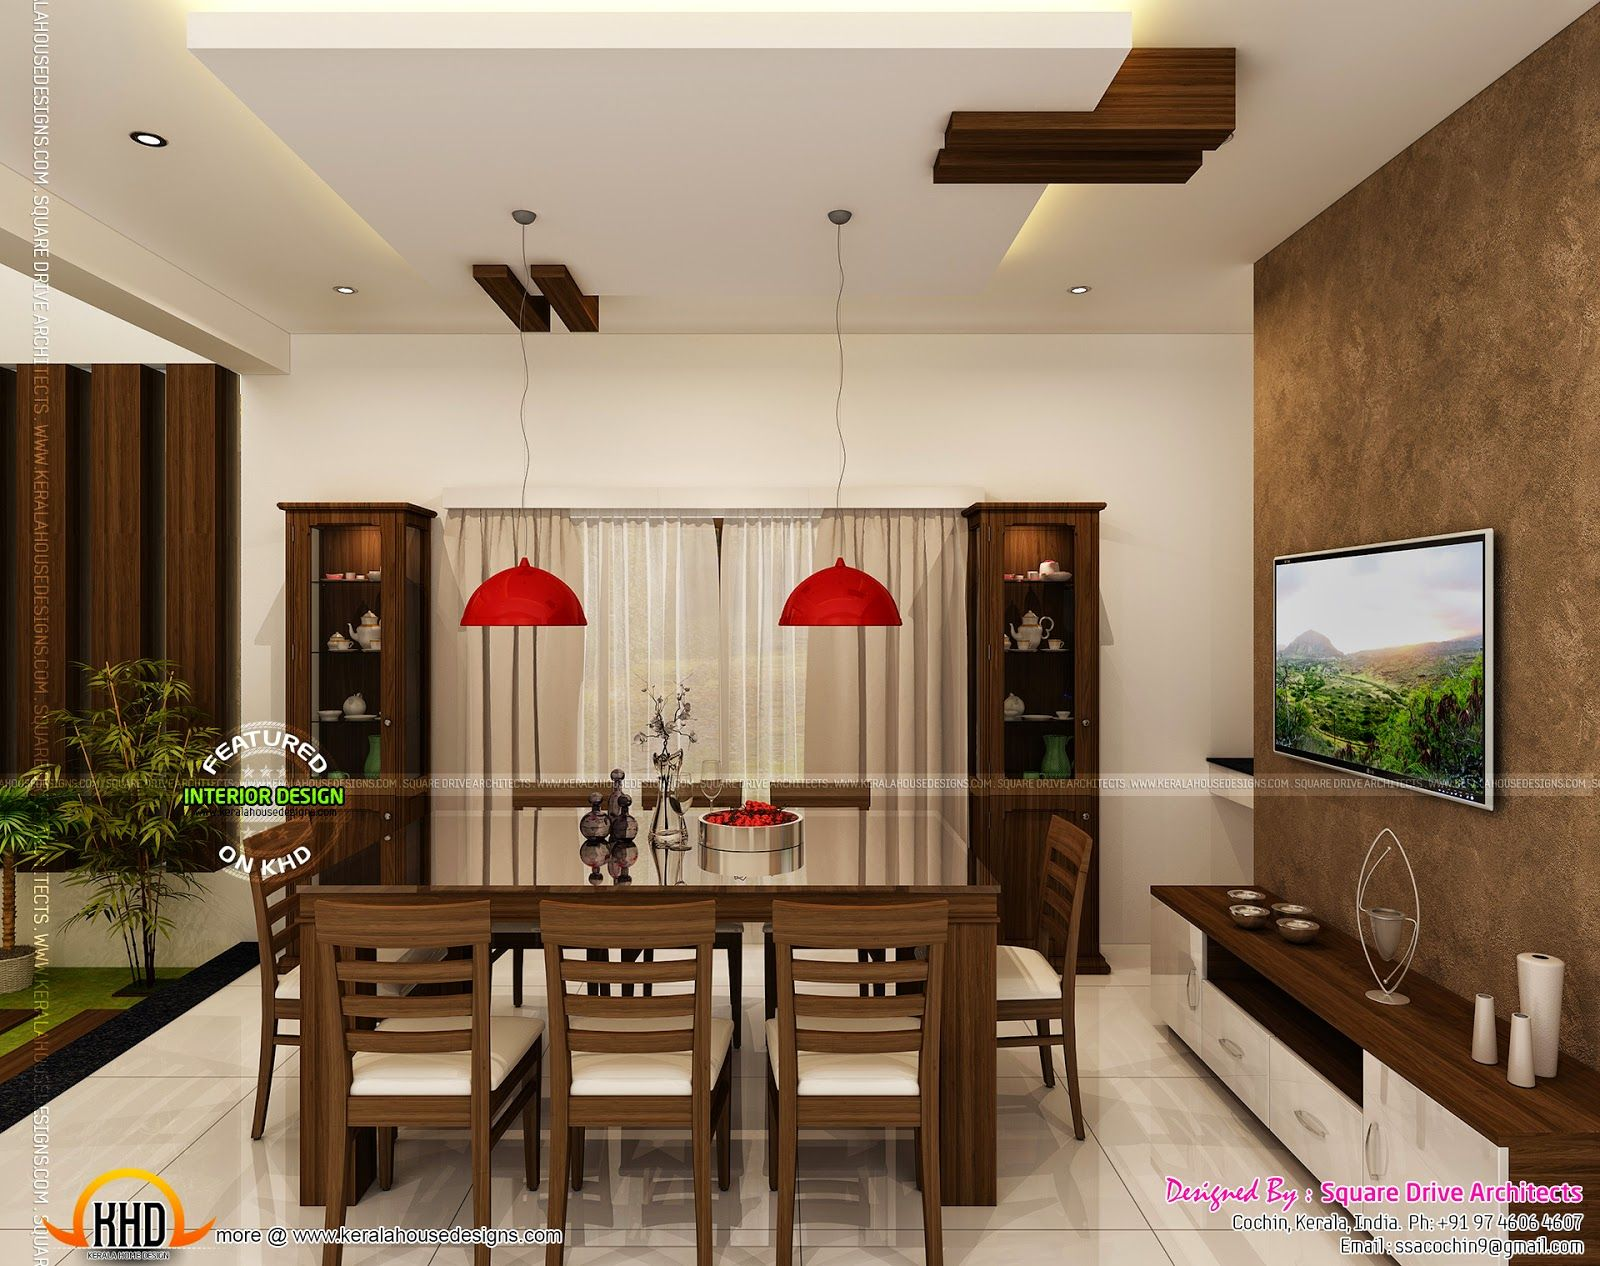 Lavish Dining Room Kerala House Design Home Interior Design